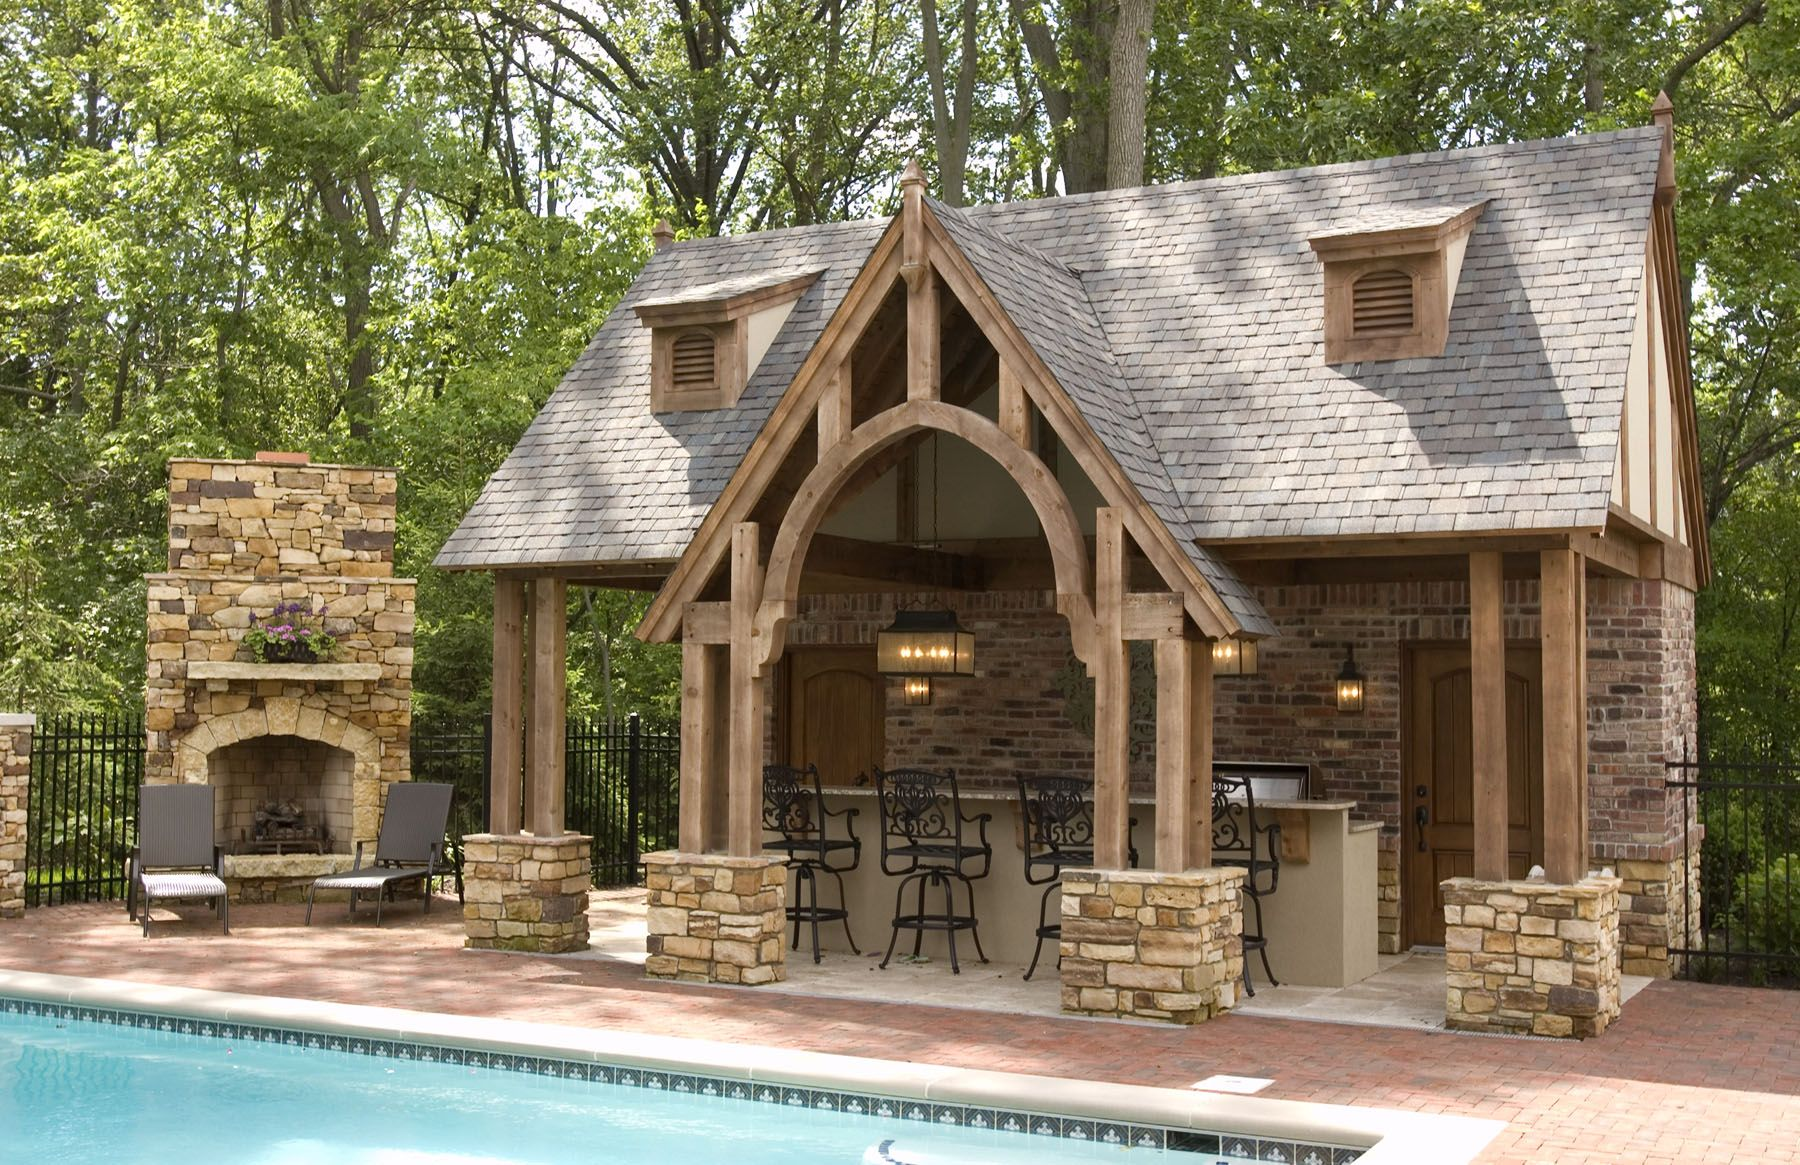 Pool House Designs Outdoor Pool And Fireplace Designs  Outdoor Kitchen And Pool